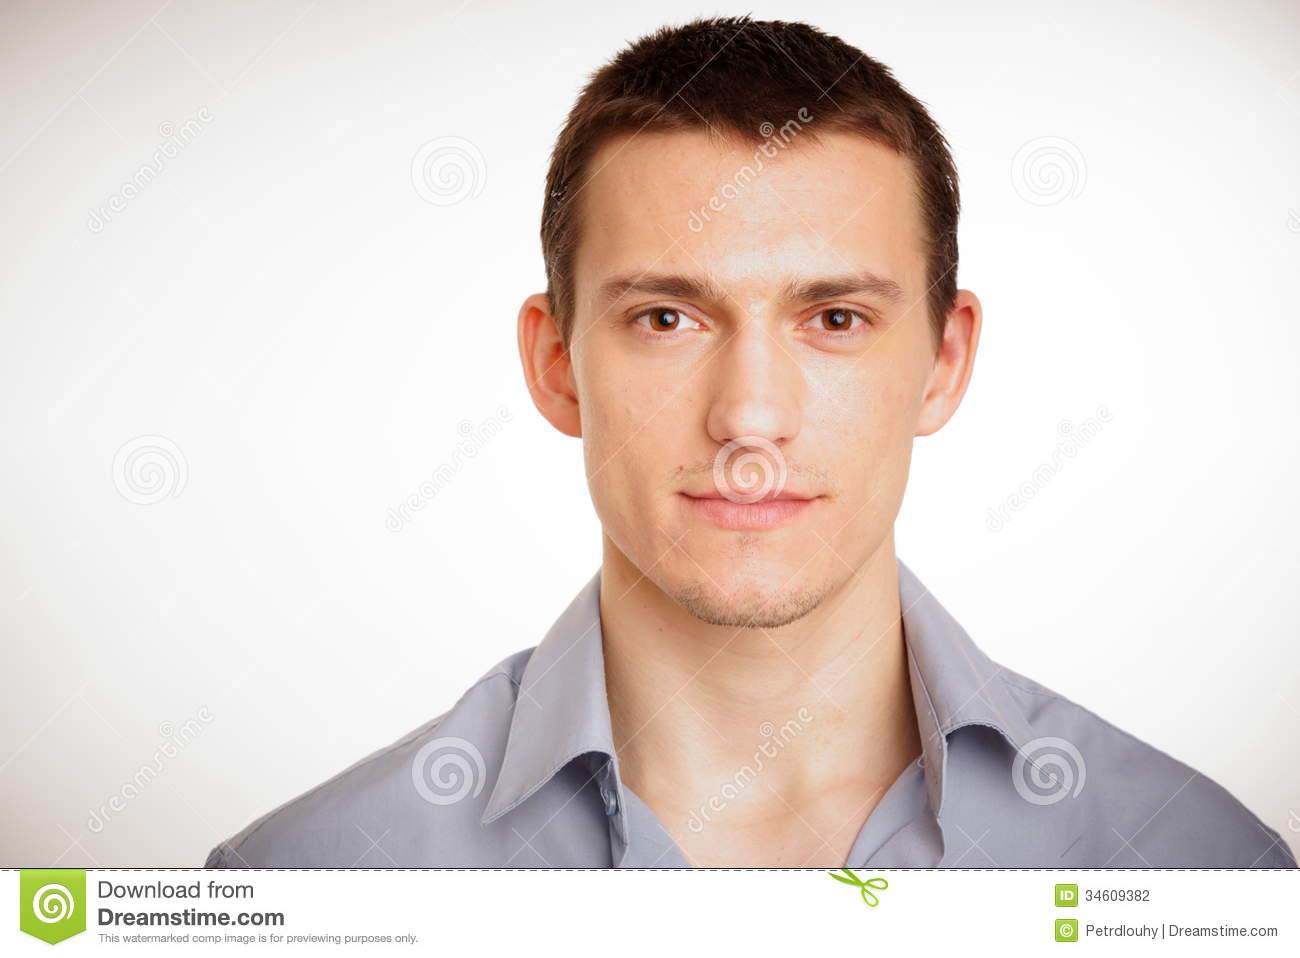 Find men Stock Images in HD and millions of other royalty-free stock photos, illustrations, and vectors in the Shutterstock collection. Thousands of new, high-quality pictures added every day.